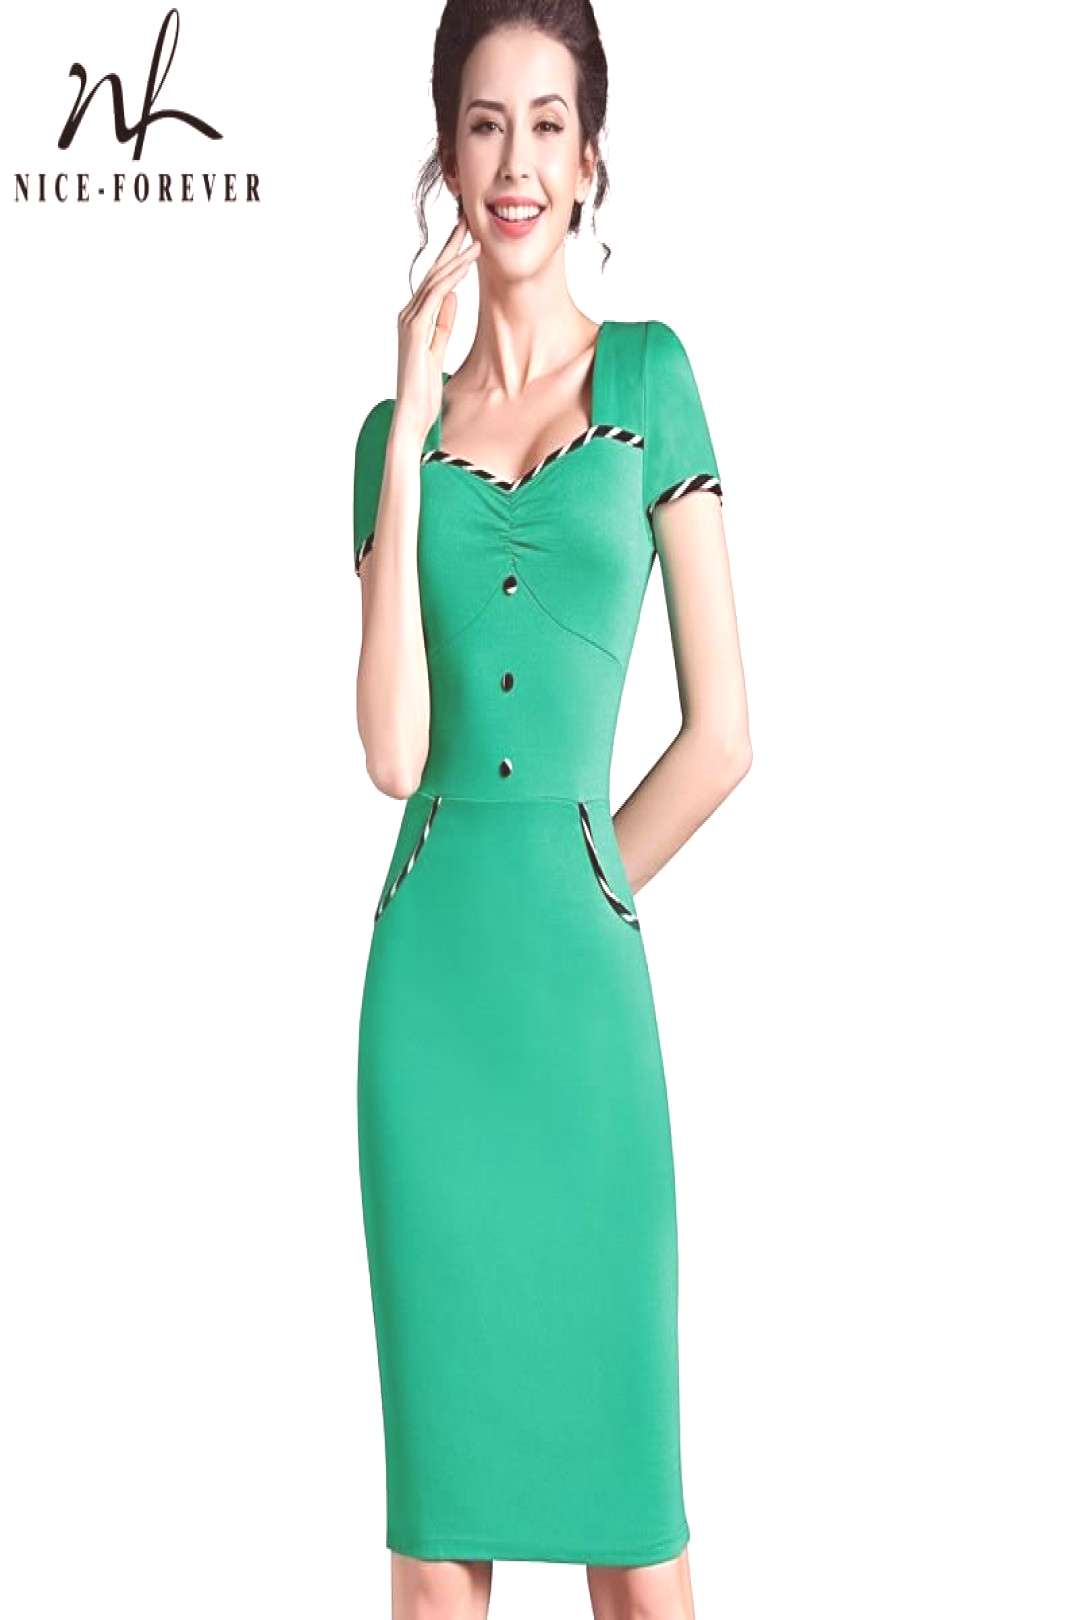 Nice-forever Fitted dress Womens summer Brief Pinup Short Sleeve Square Neck Work Button Bodycon